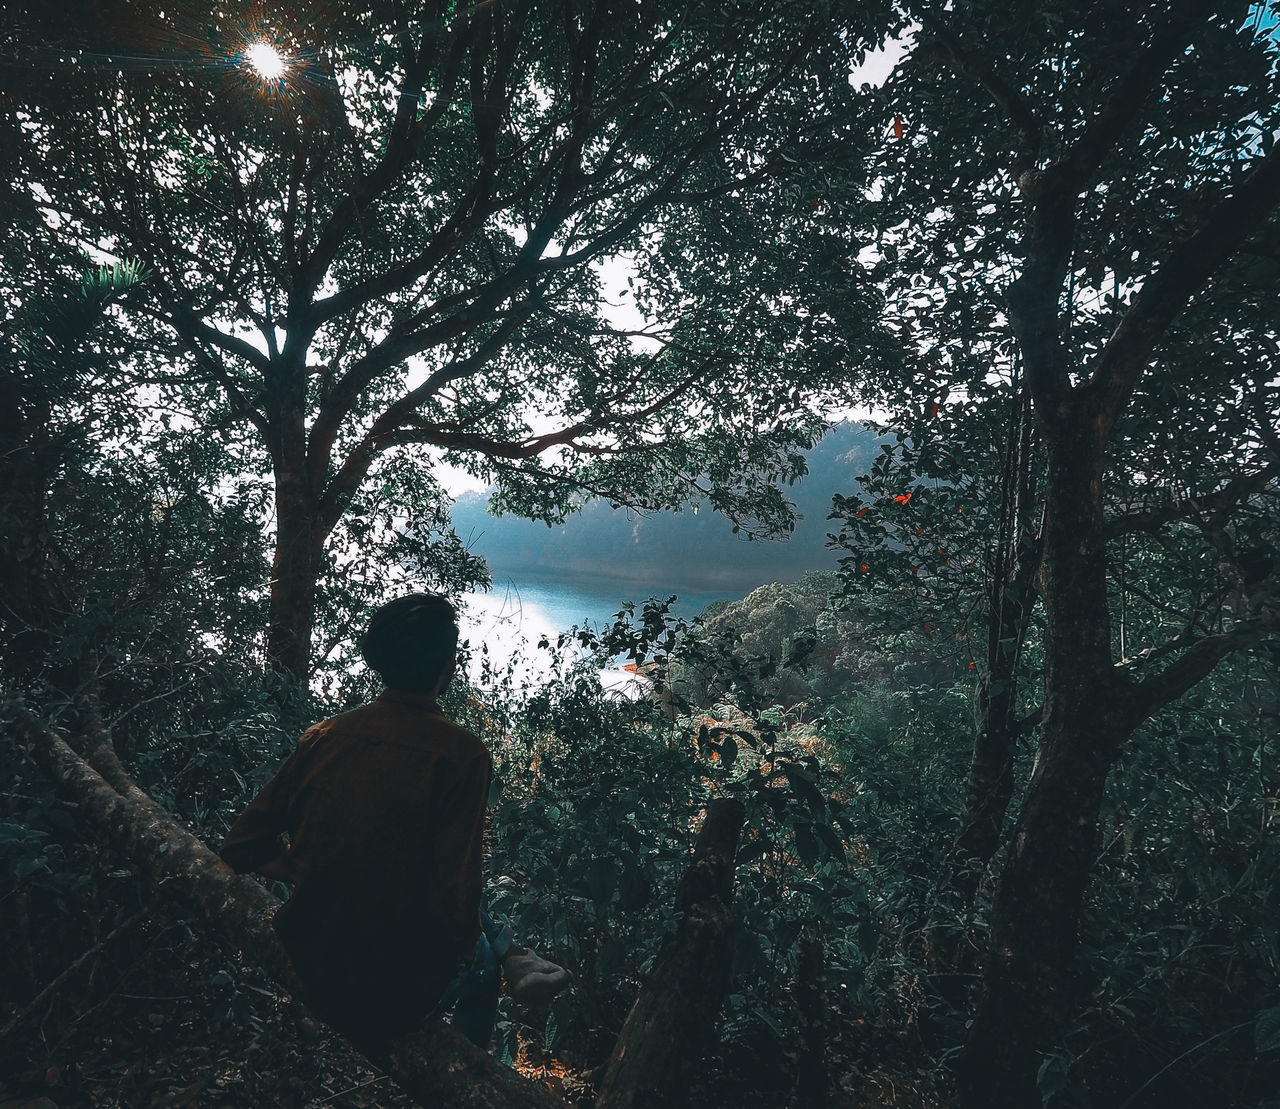 REAR VIEW OF MAN STANDING AGAINST TREES IN FOREST